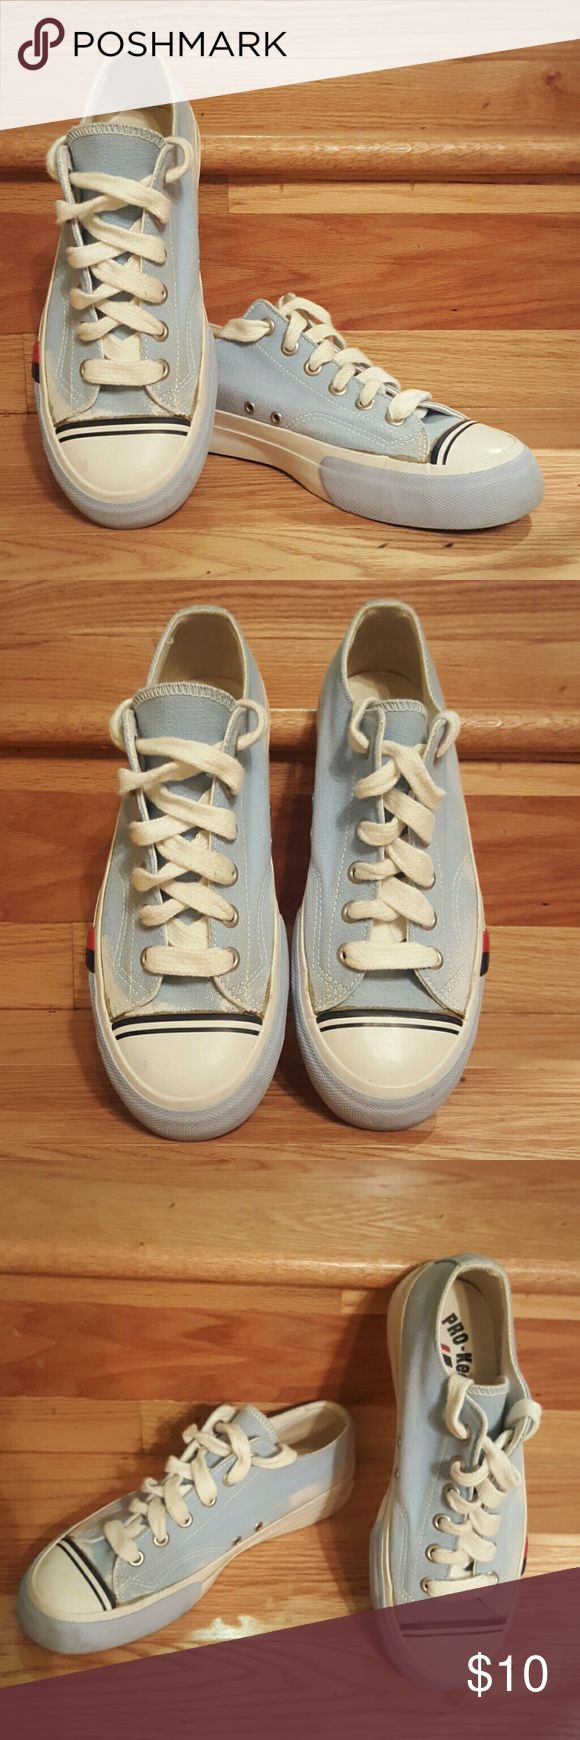 PRO Keds Sneakers Size 7.5 Light Blue PRO Keds low top sneakers.  A little discoloration but otherwise great condition. PRO Keds  Shoes Athletic Shoes